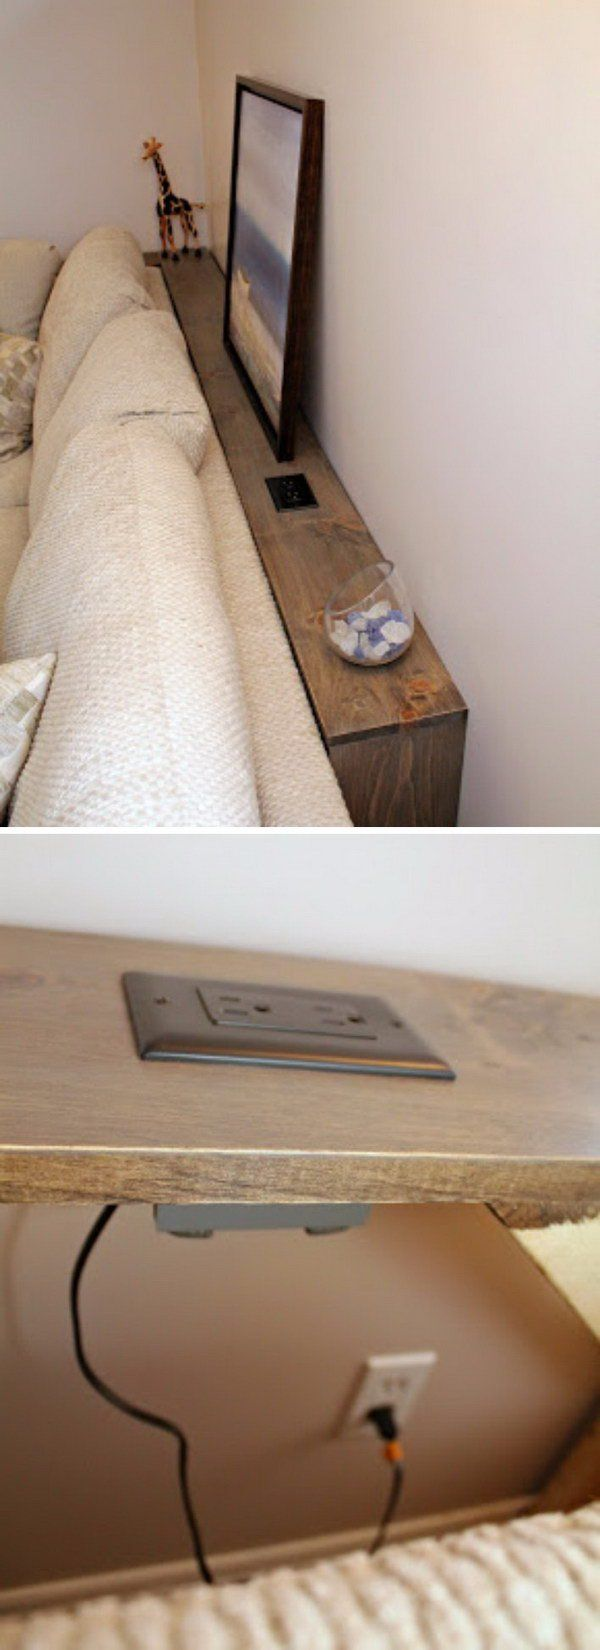 How to make a sofa table from 1 x 6 lumber - 20 Great Ways To Make Use Of The Space Behind Couch For Extra Storage And Visual Depth